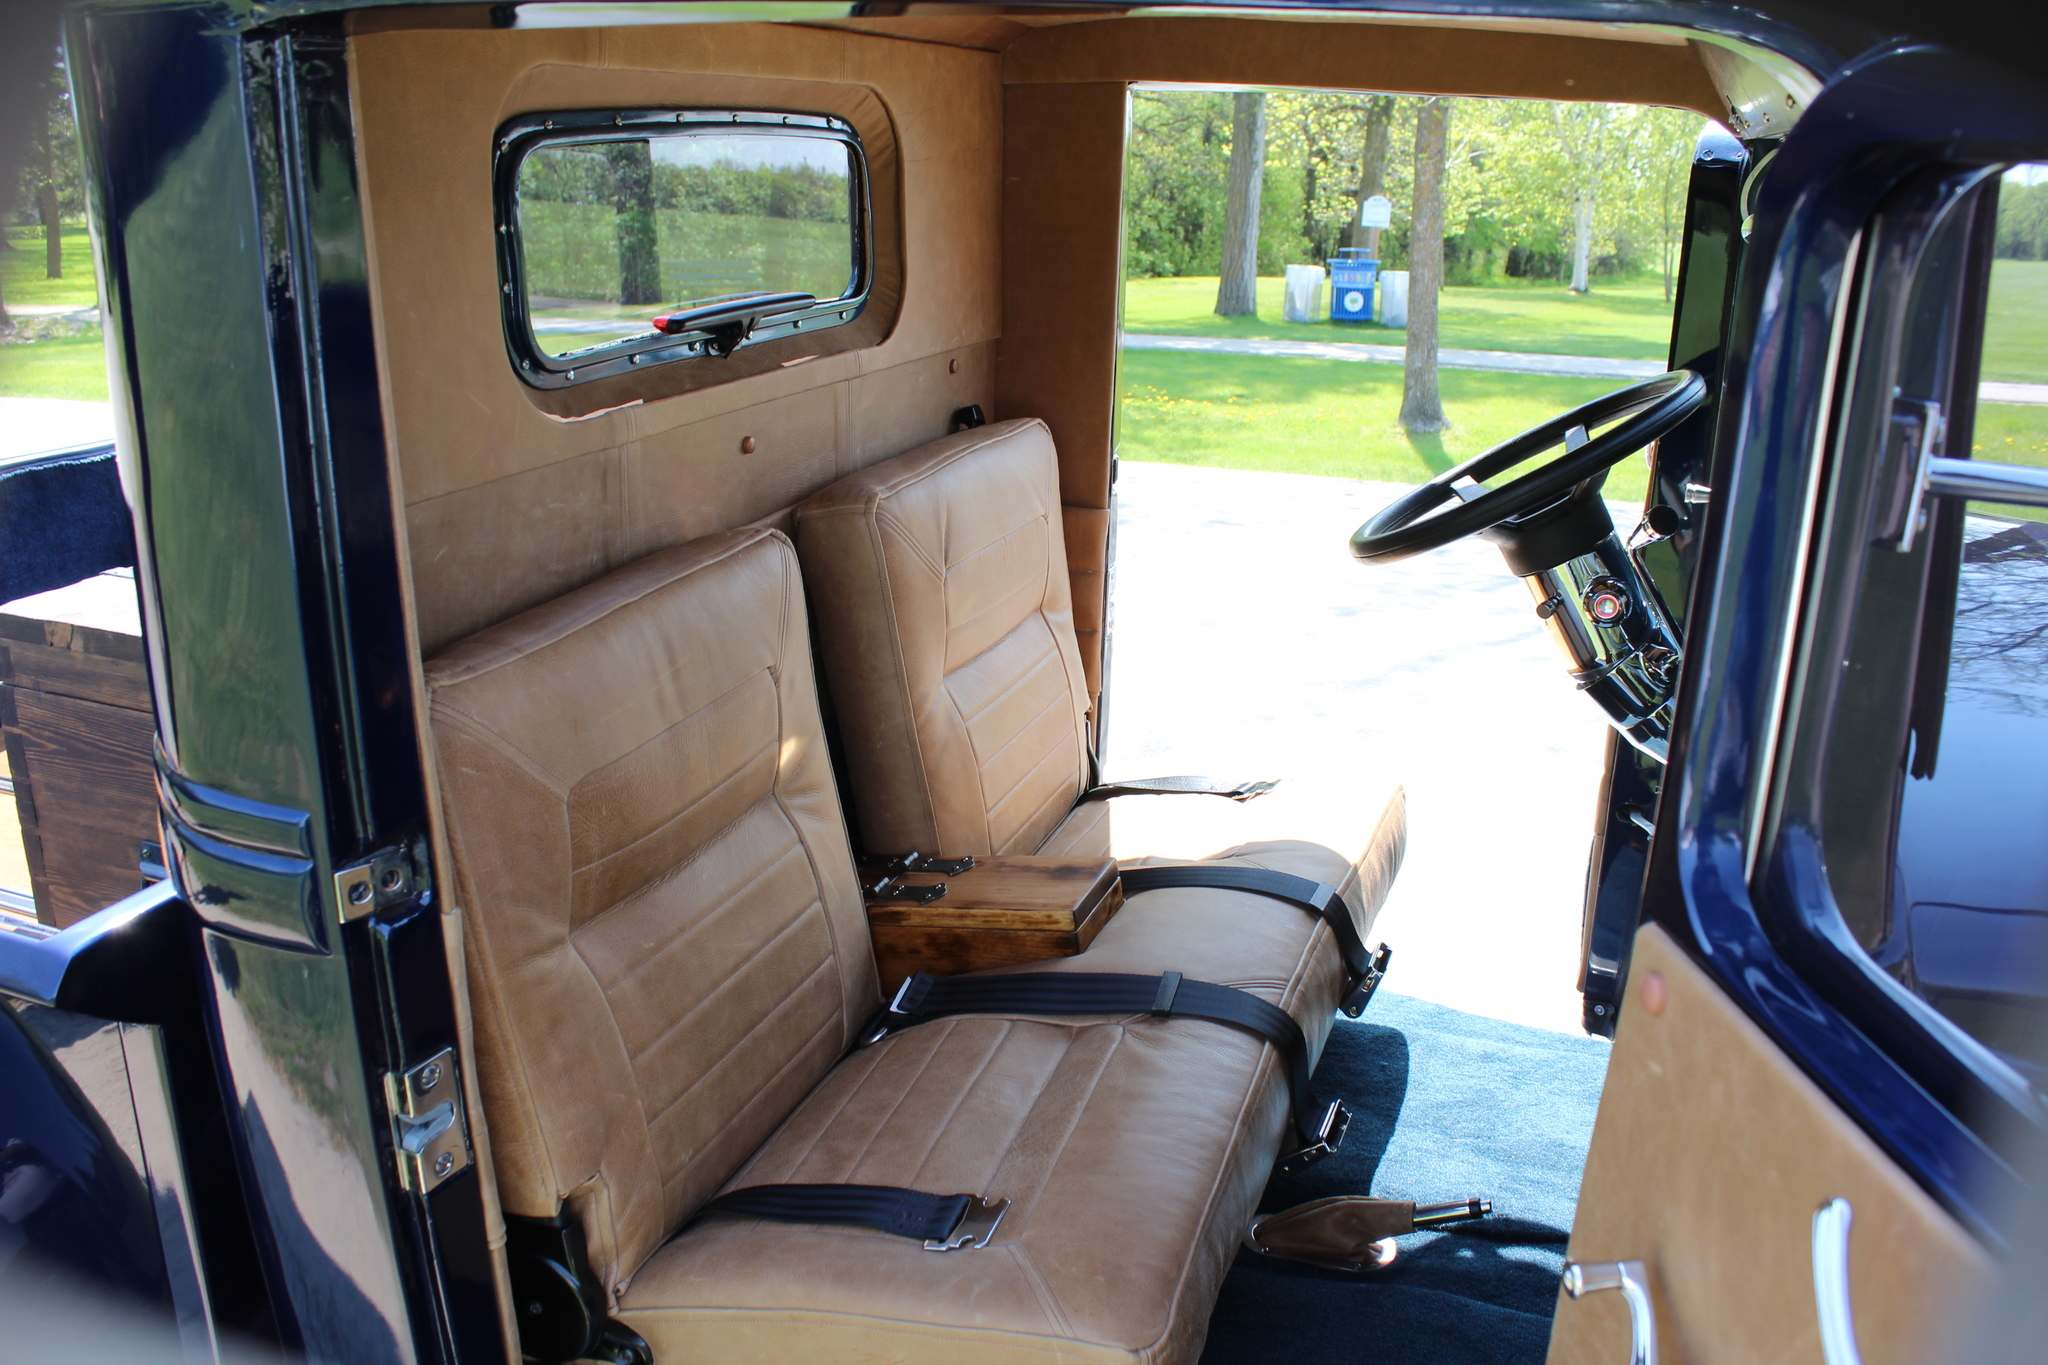 The interior is comfortable and classy.